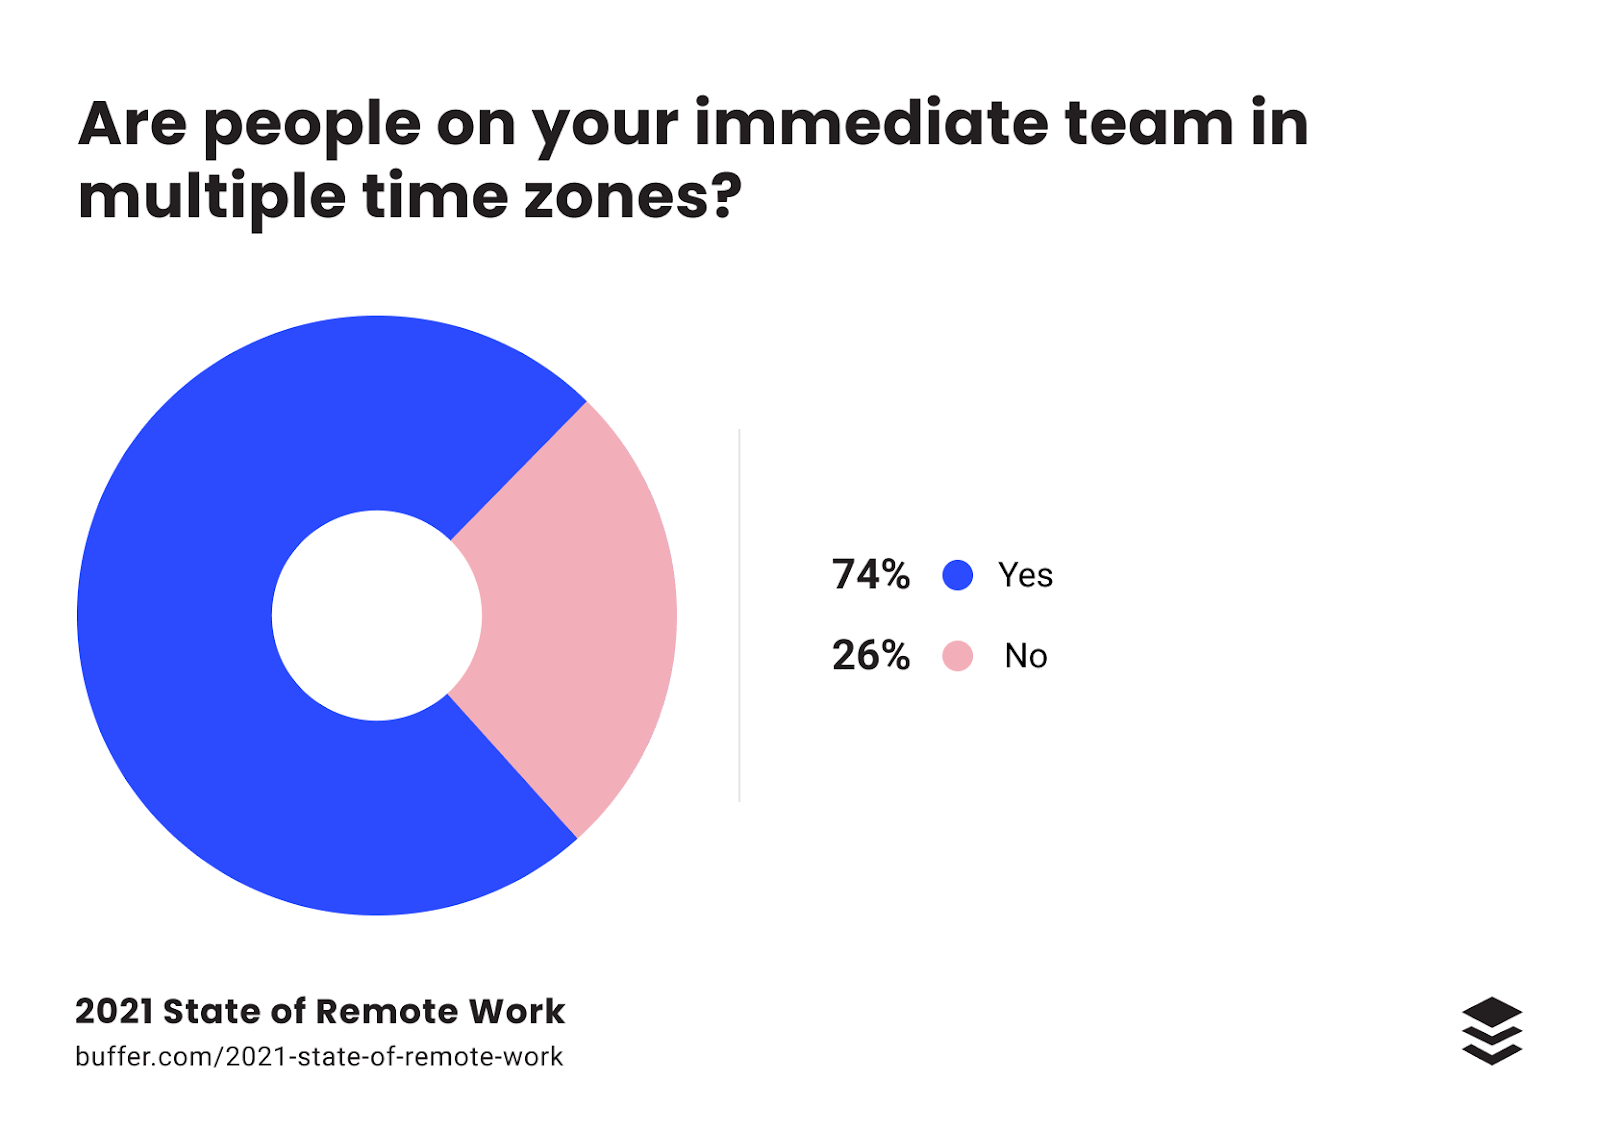 async communication is on the rise, if 2021 remote work statistics are to be believed